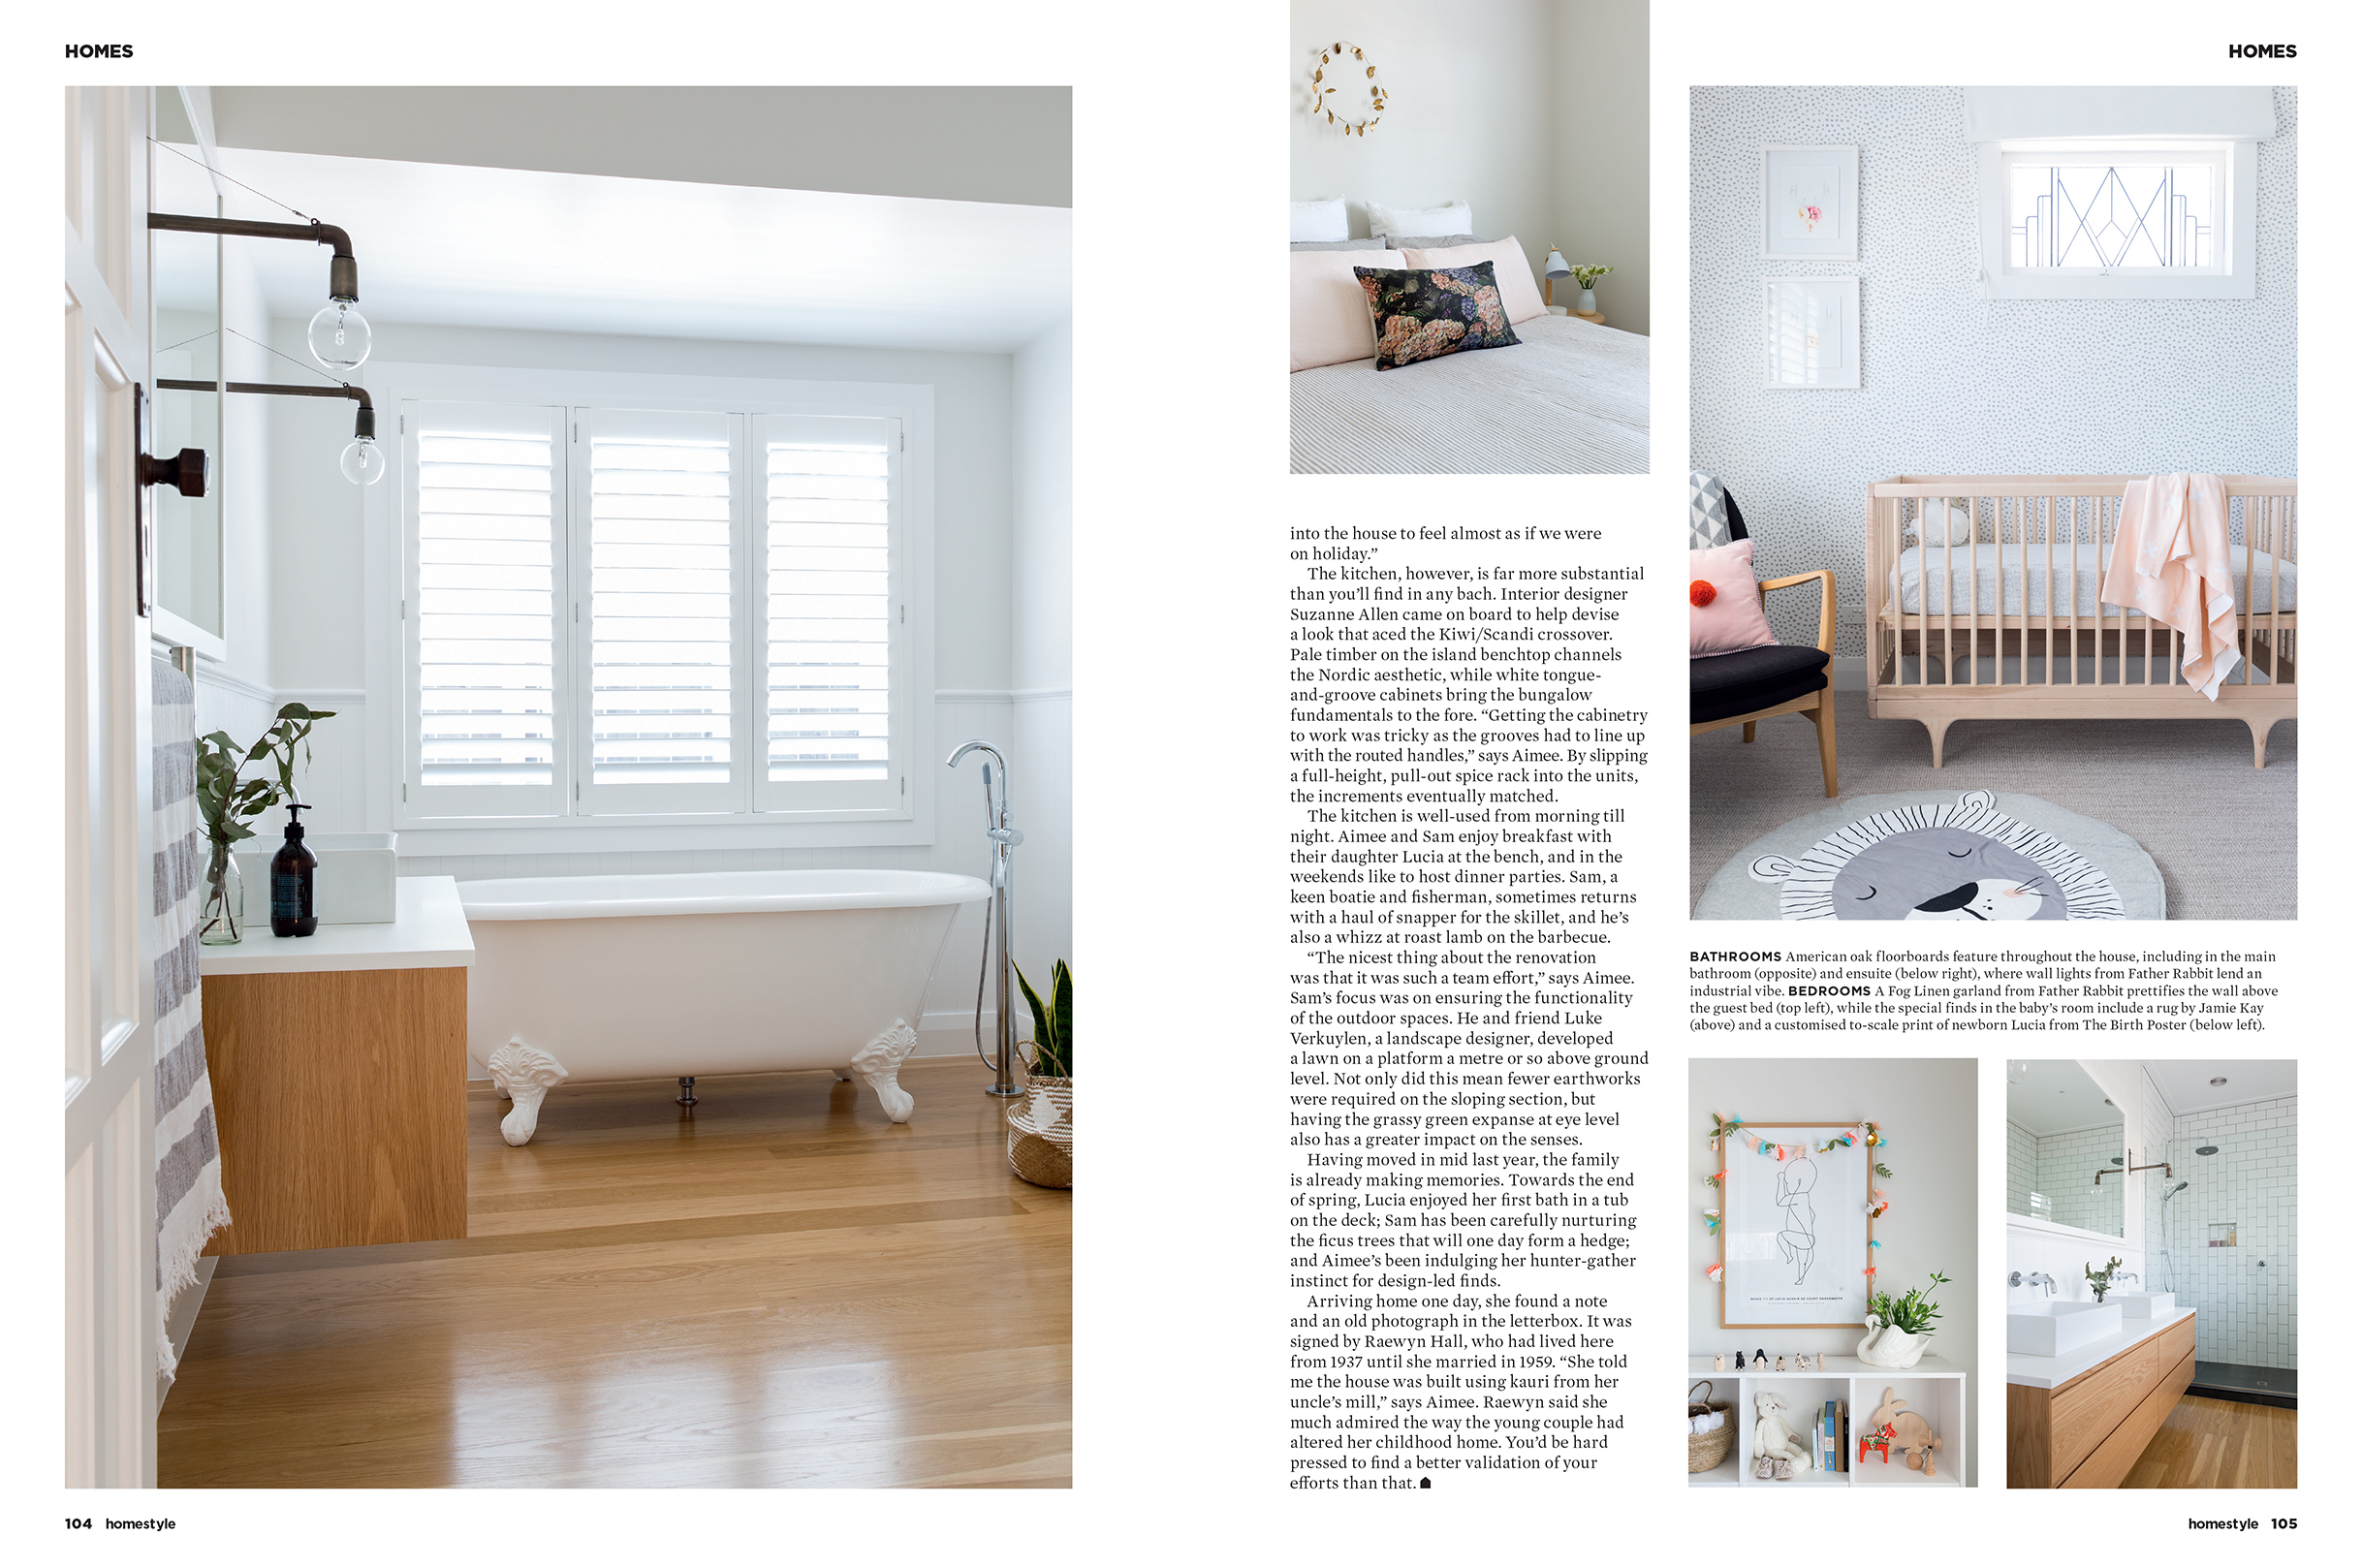 Homestyle spread 4.jpg